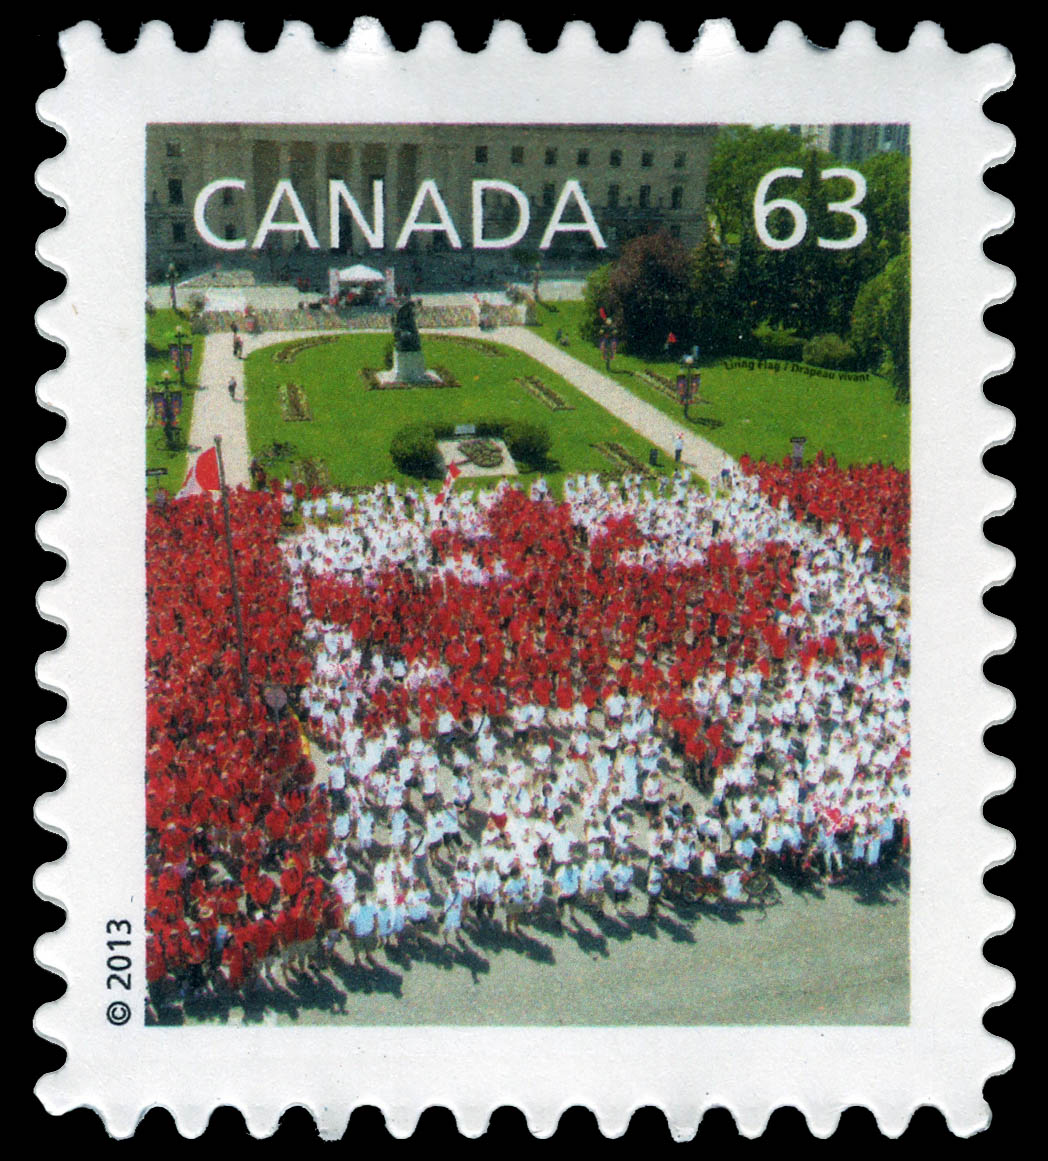 Canada Day Living Flag Canada Postage Stamp